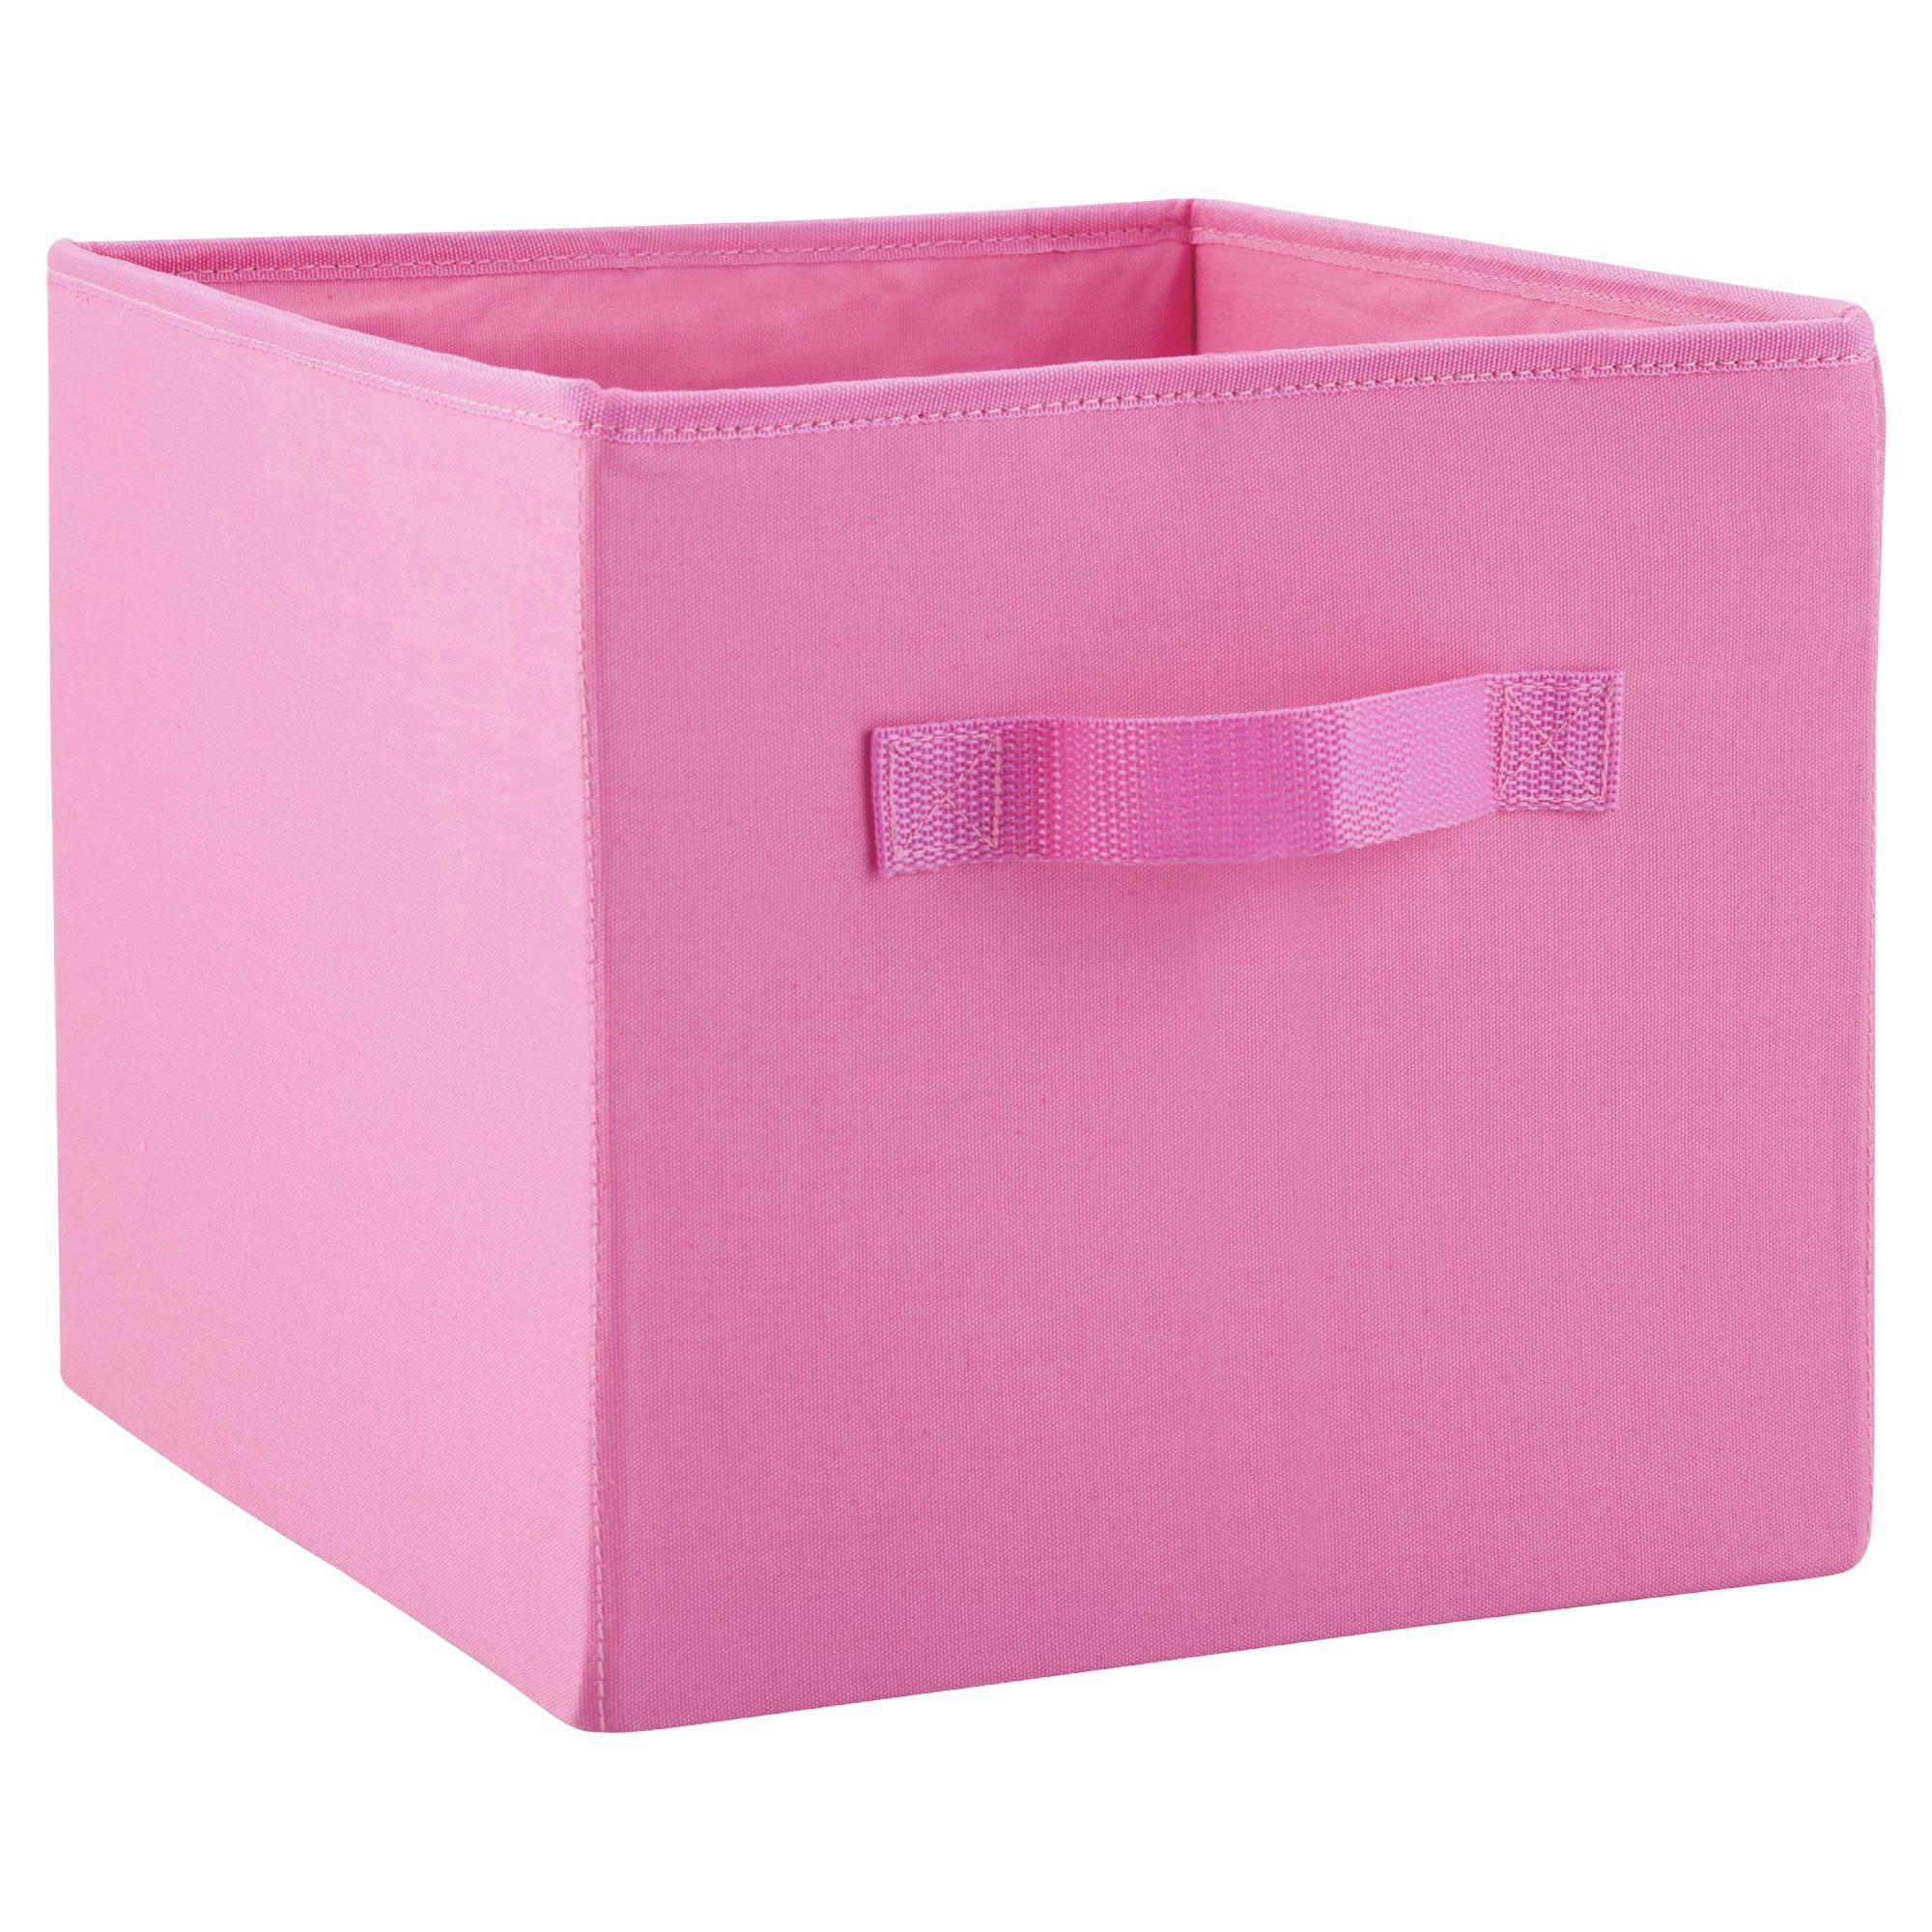 Kids pink storage box